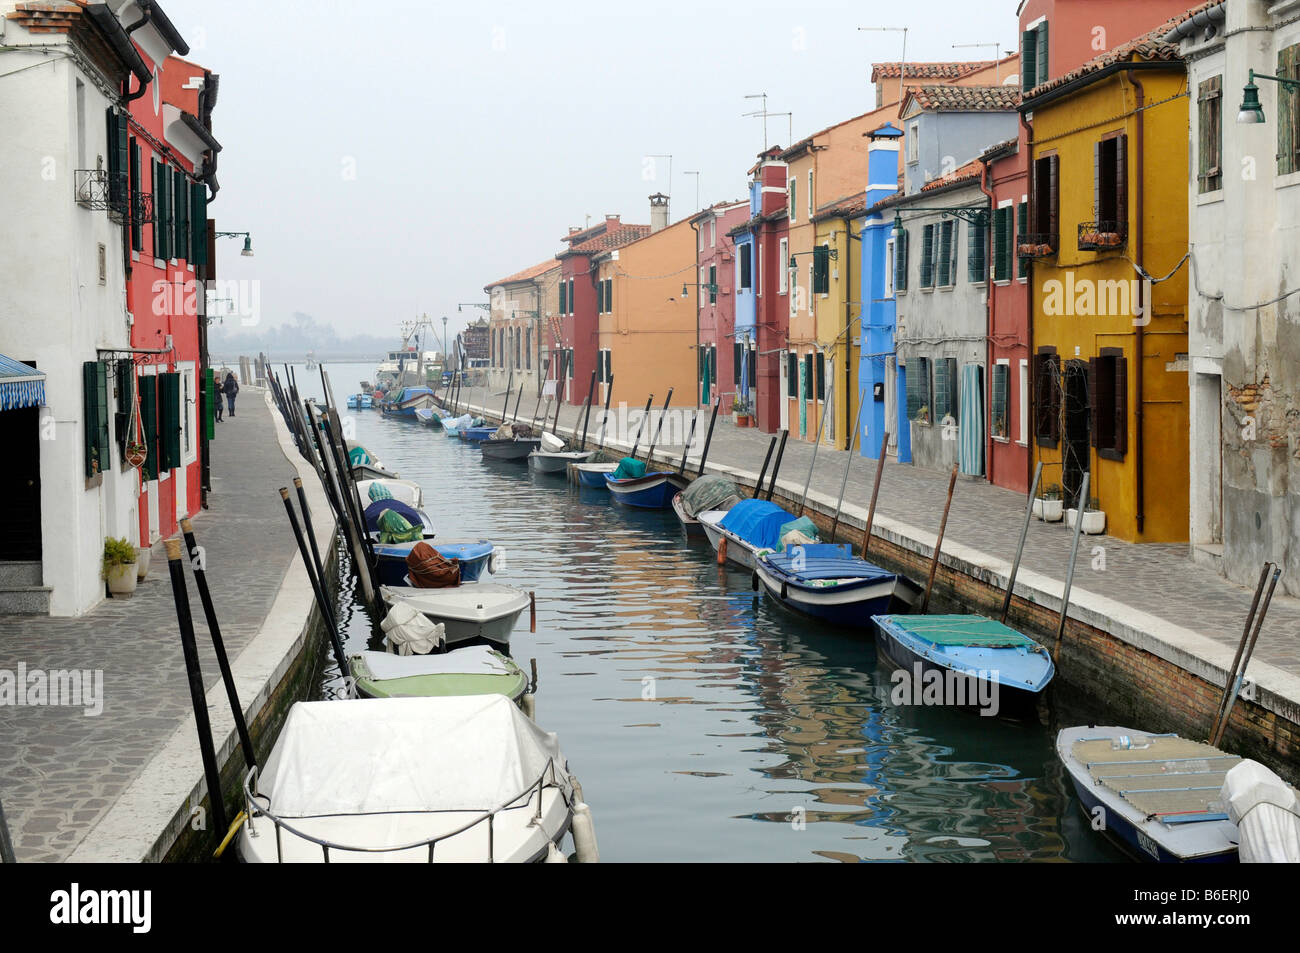 Canal lined with boats running between colorfully painted building facades in Burano, Venice, Venetia, Italy, Europe Stock Photo